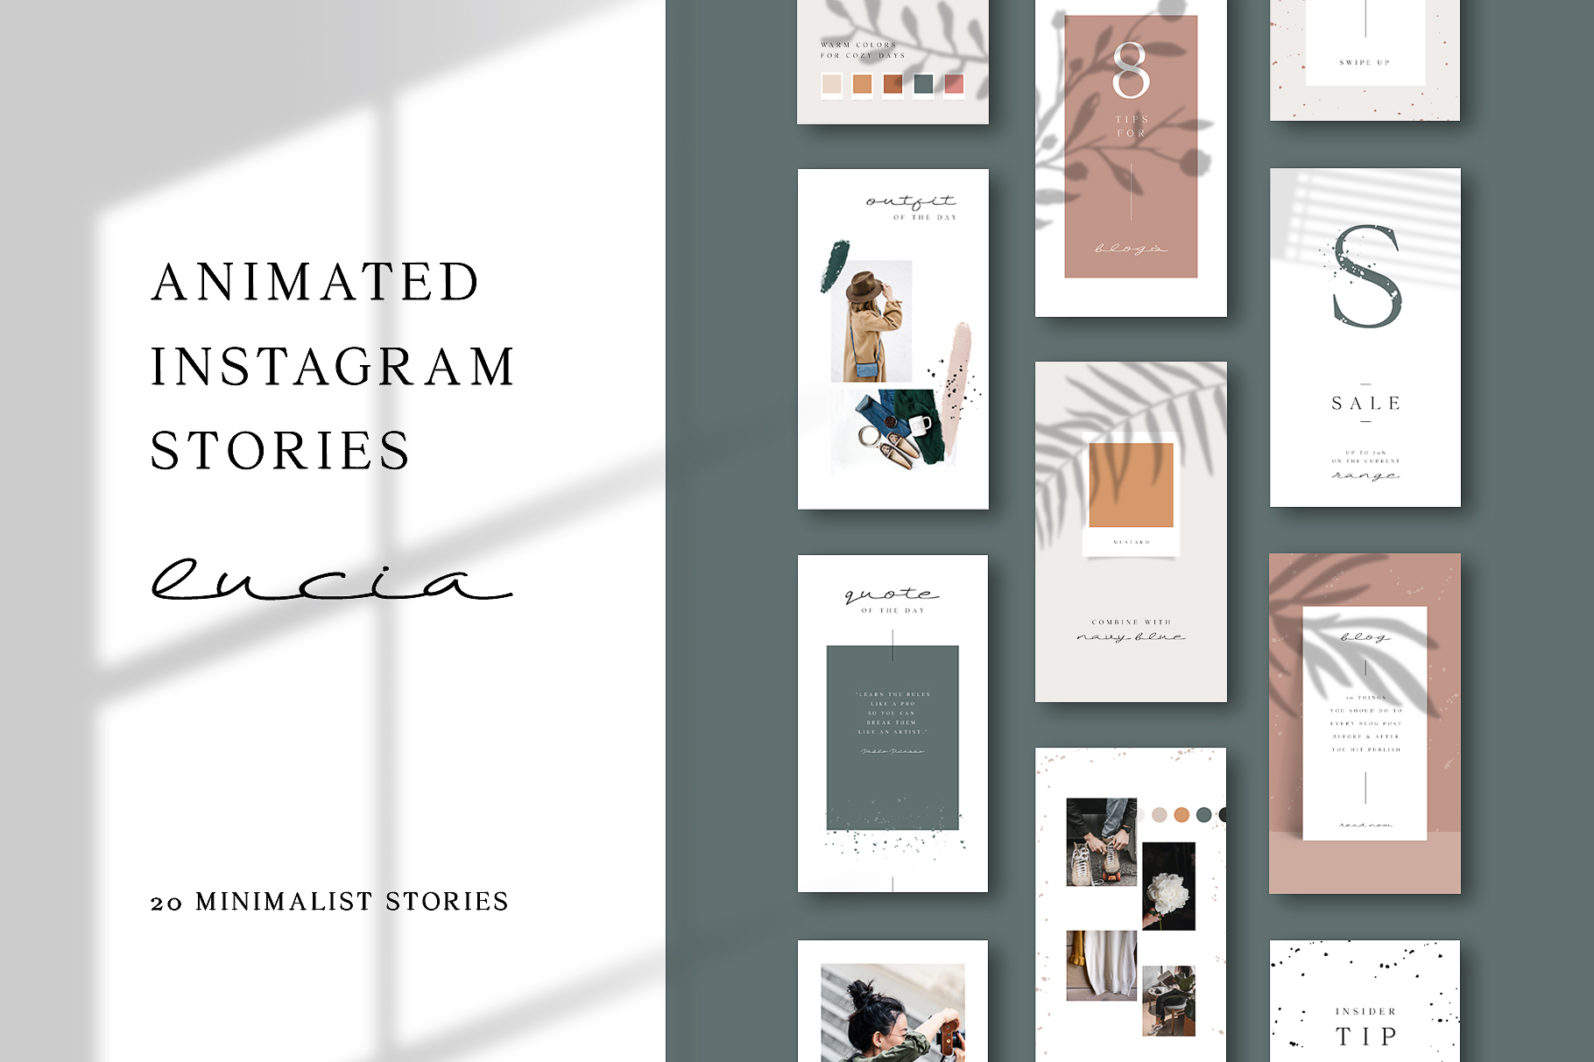 ANIMATED Instagram Stories – Lucia - preview 012 -